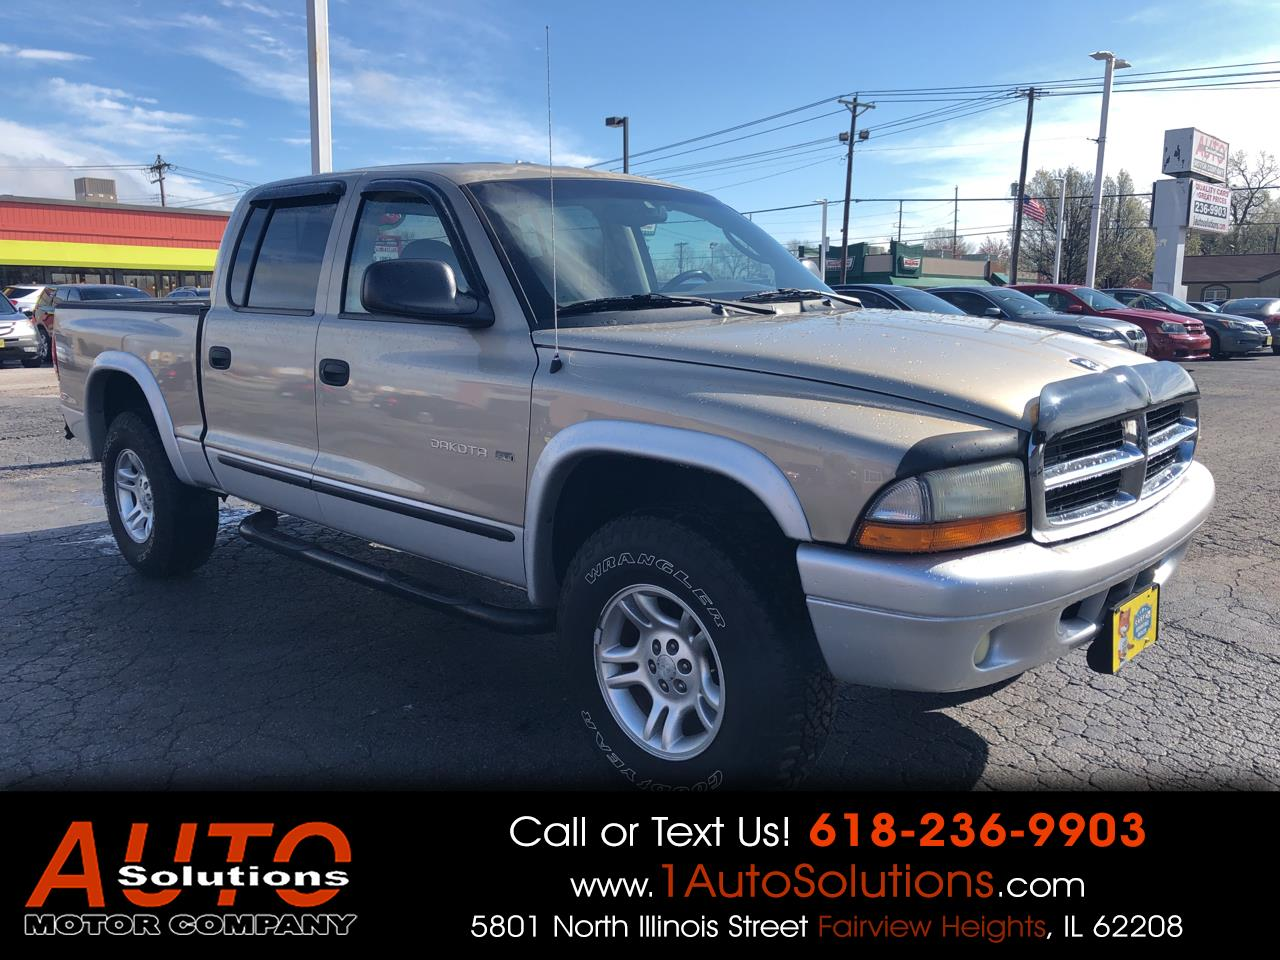 2002 Dodge Dakota Quad Cab 131